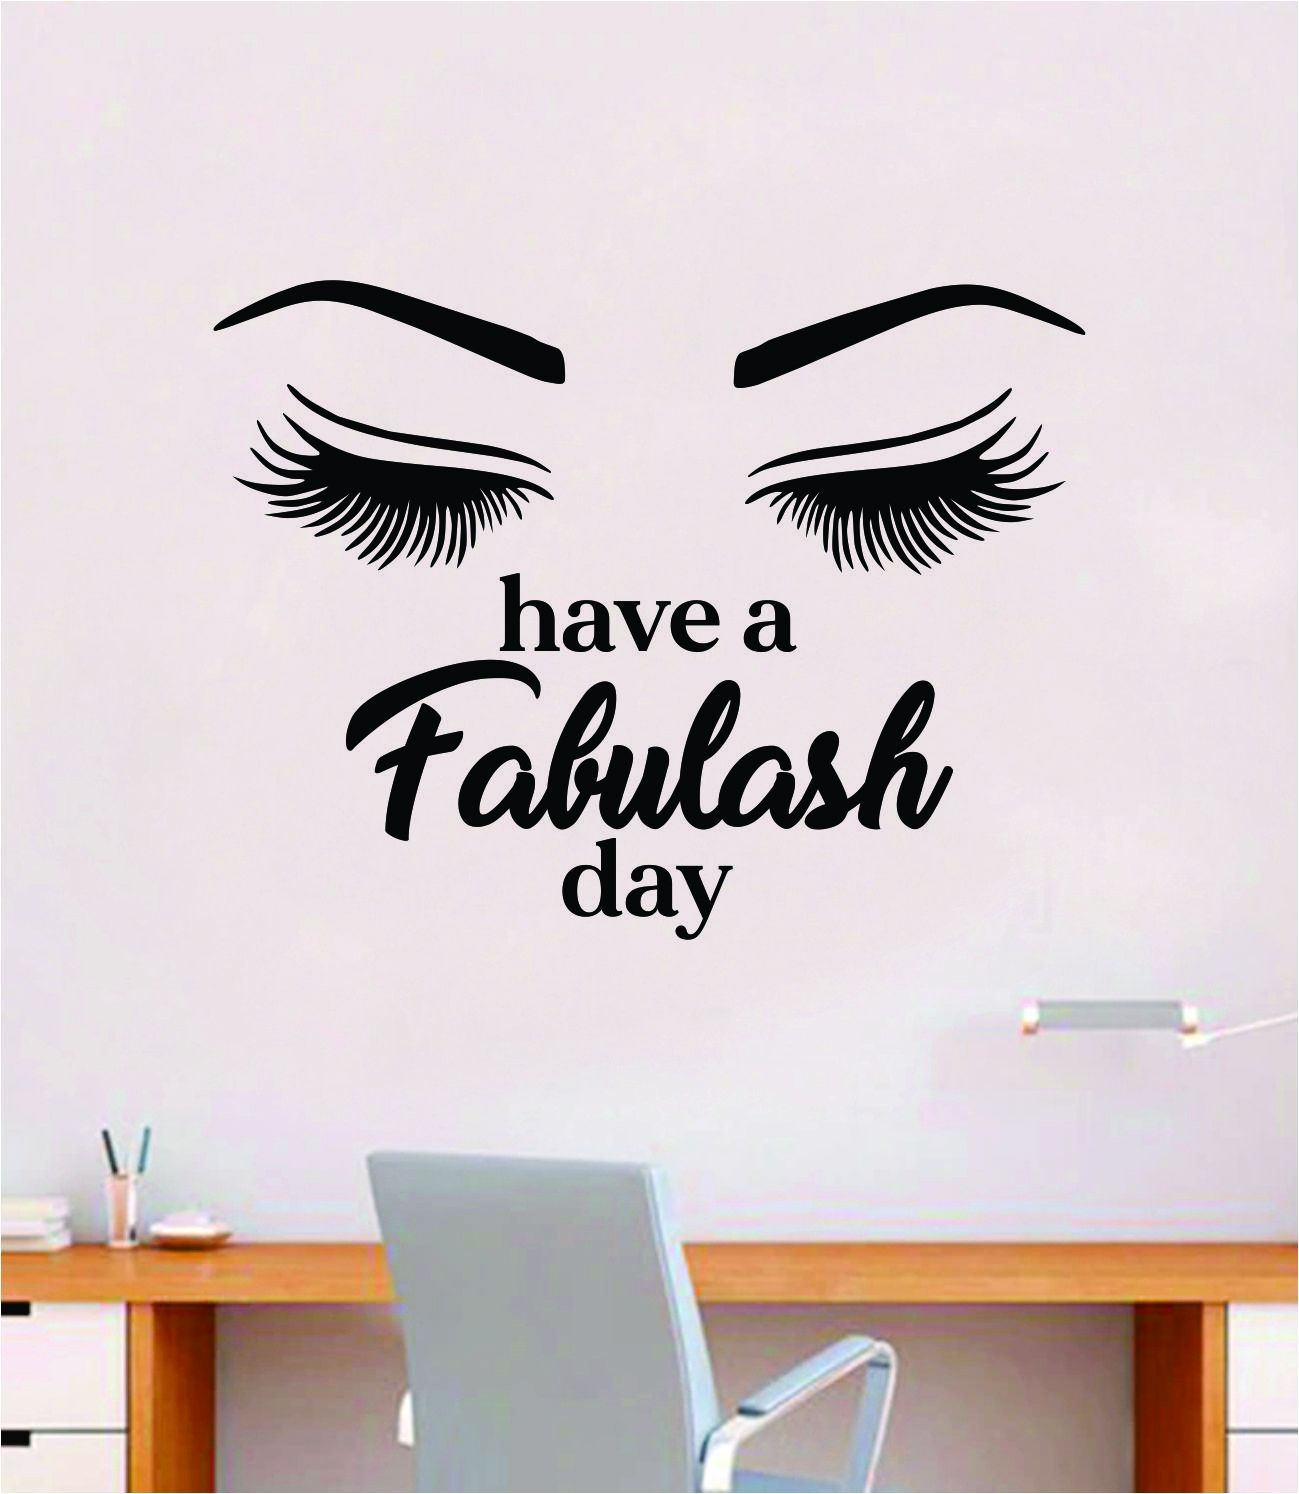 Have A Fabulash Day Wall Decal Sticker Vinyl Home Decor Bedroom Art Make Up Cosmetics Beauty Salon Girls Eyes Lashes Brows Eyelashes Eyebrows - olympic blue